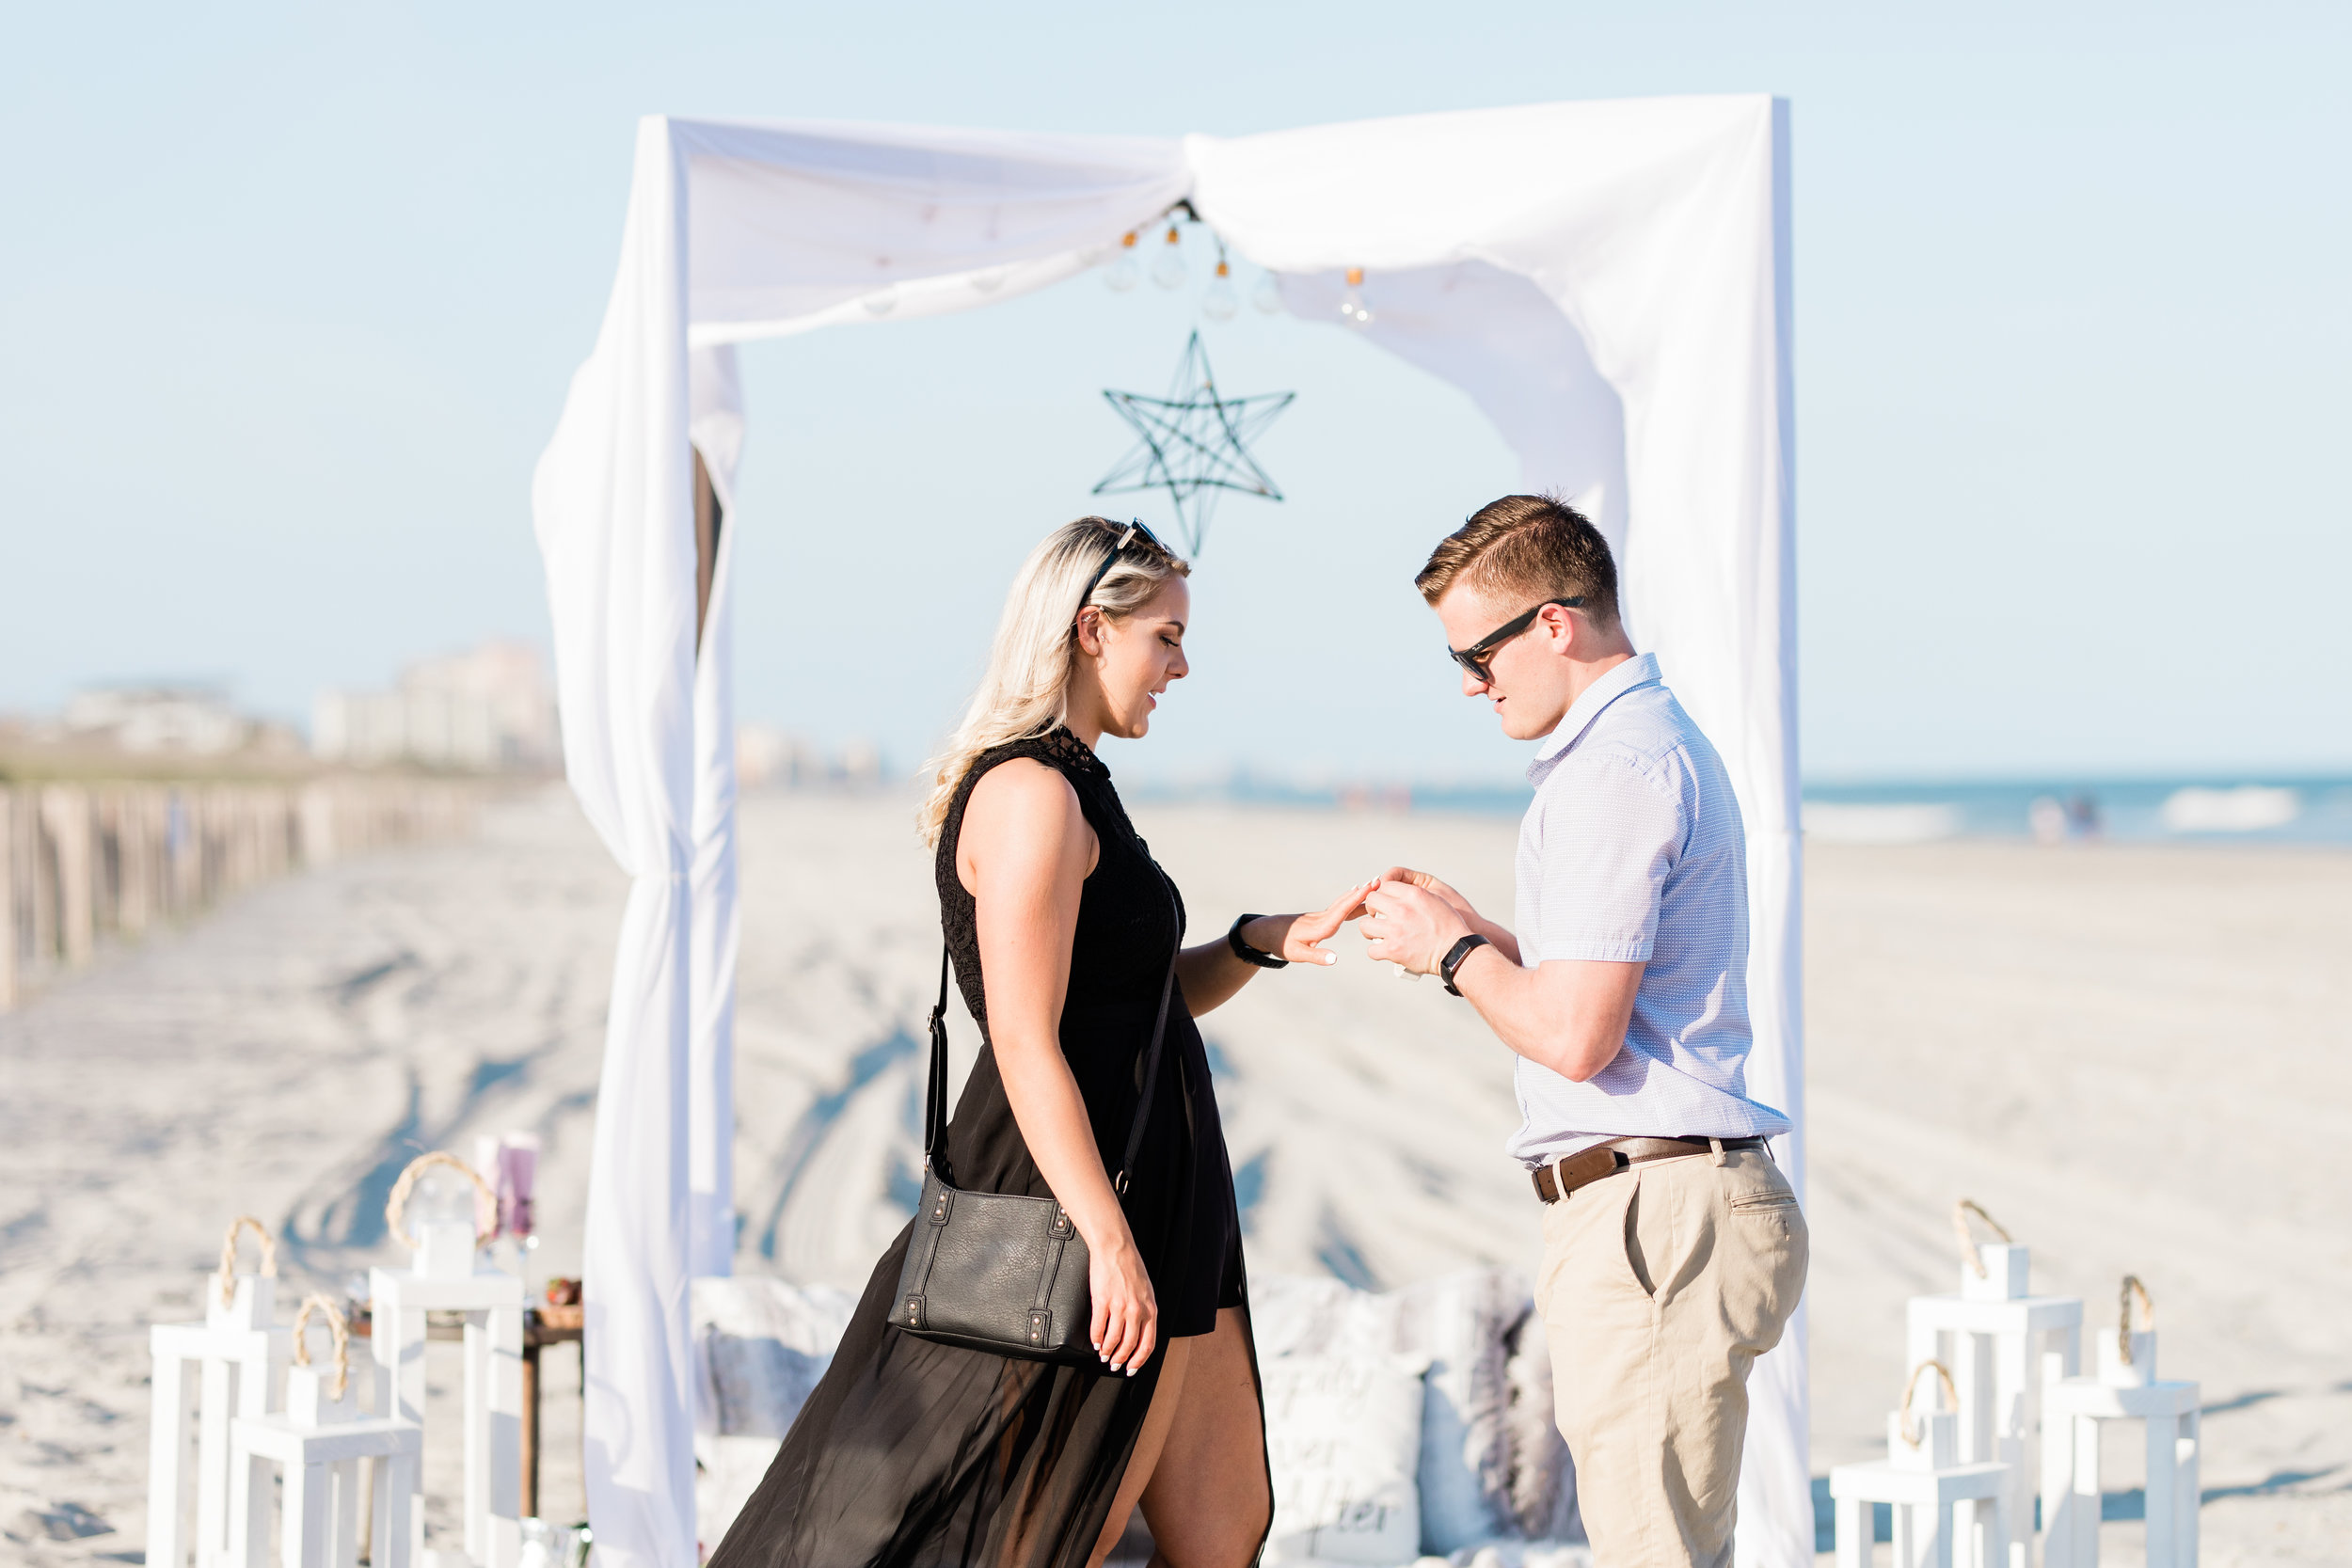 engaged myrtle beach events by santana hannahruth .jpg